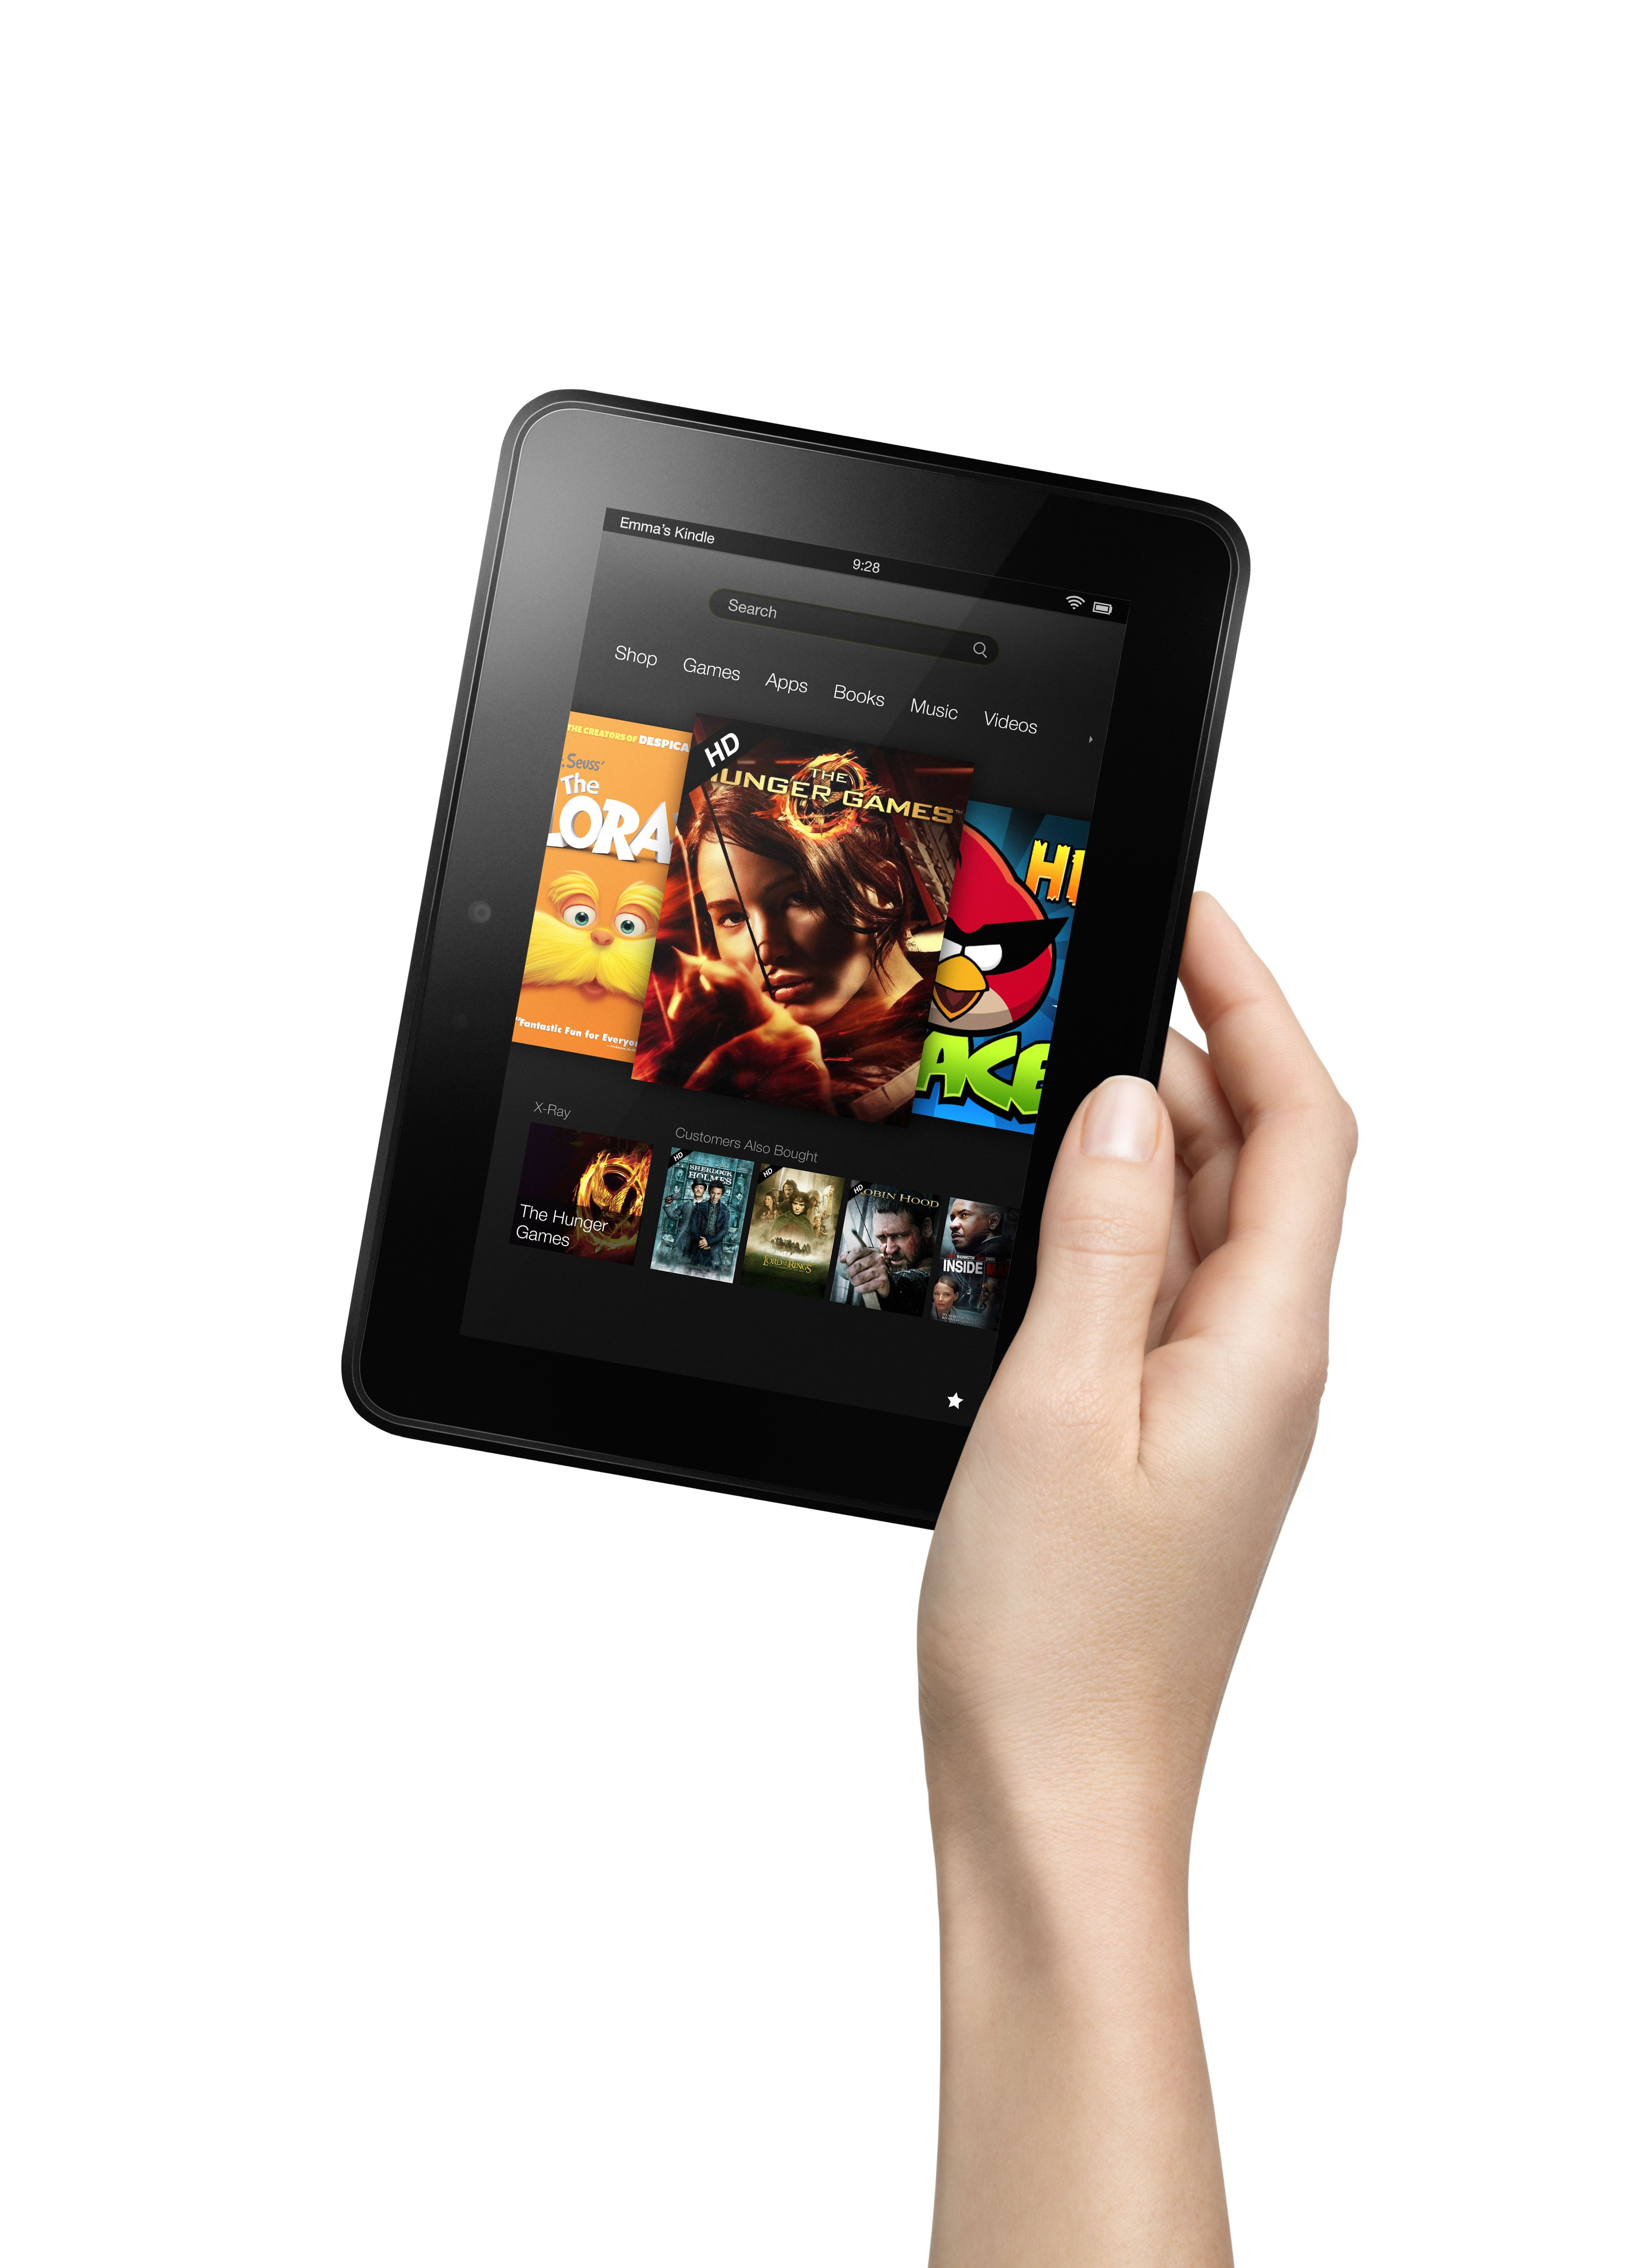 When It Comes To Hd Displays Great Resolution Is Just The Start Unlike Other 7 Tablets Kindle Fire Hd Delivers Ri Kindle Fire Hd Kindle Fire Amazon Gadgets